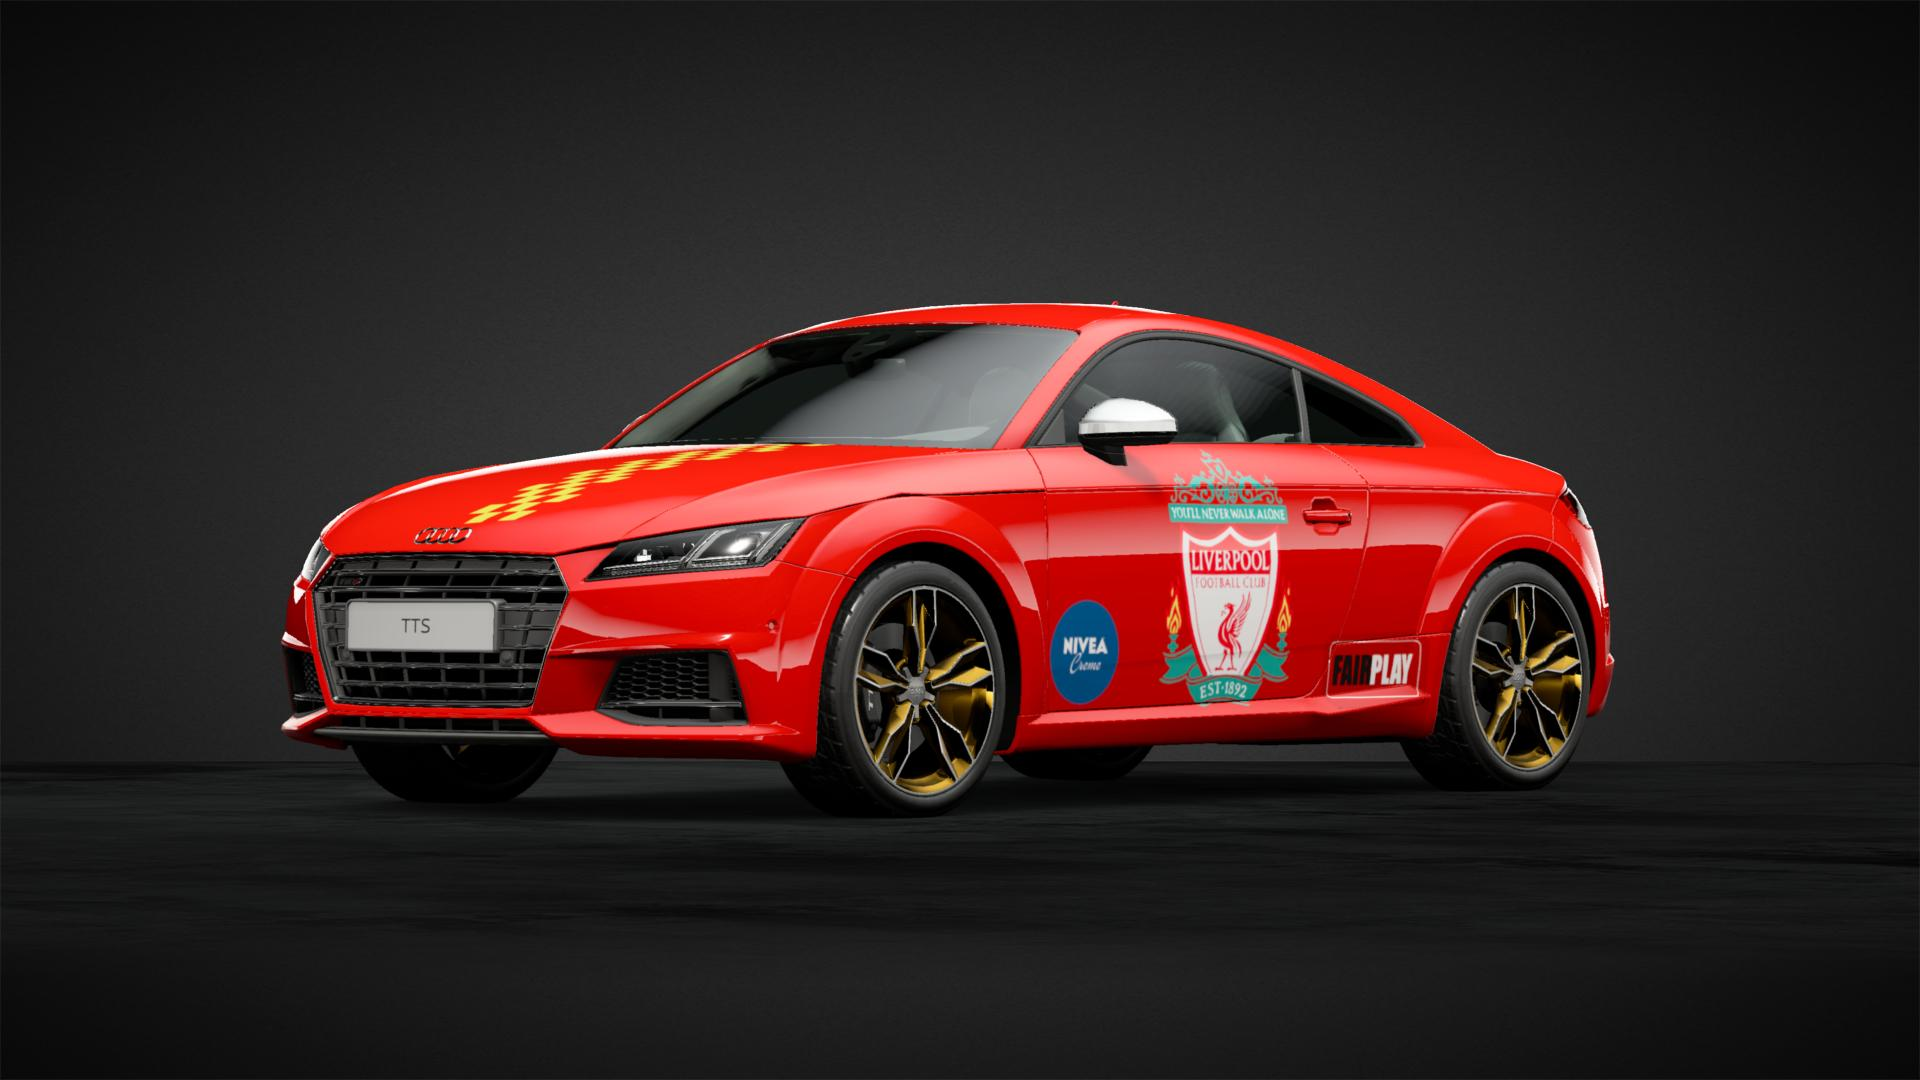 Liverpool F C Update Car Livery By StayPuff Panda